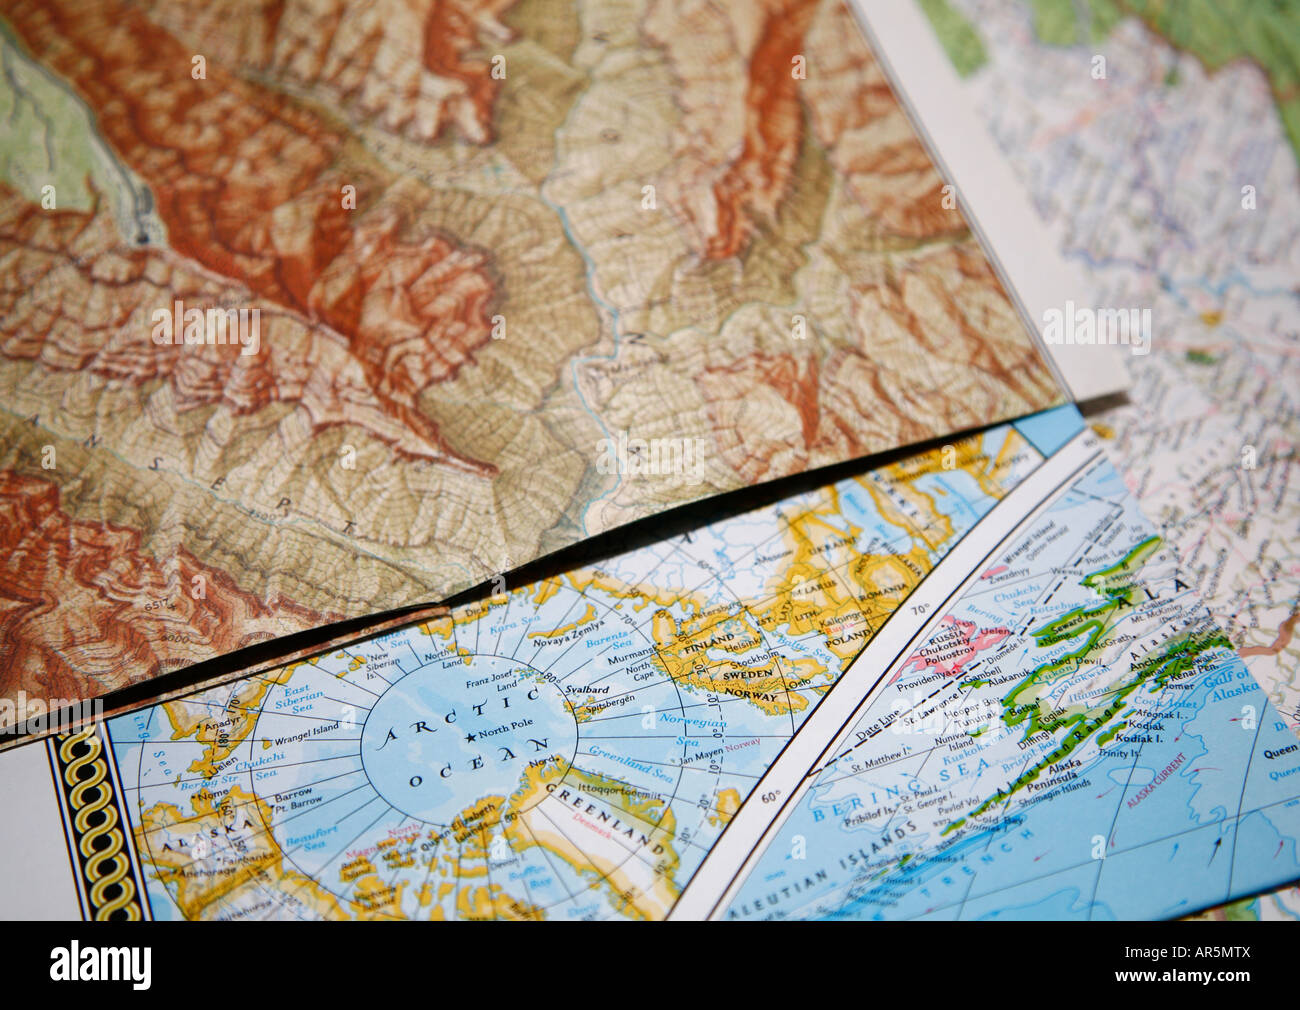 close up of road maps lying on top of each other map of mountain area and map of arctic area with north pole shallow dof